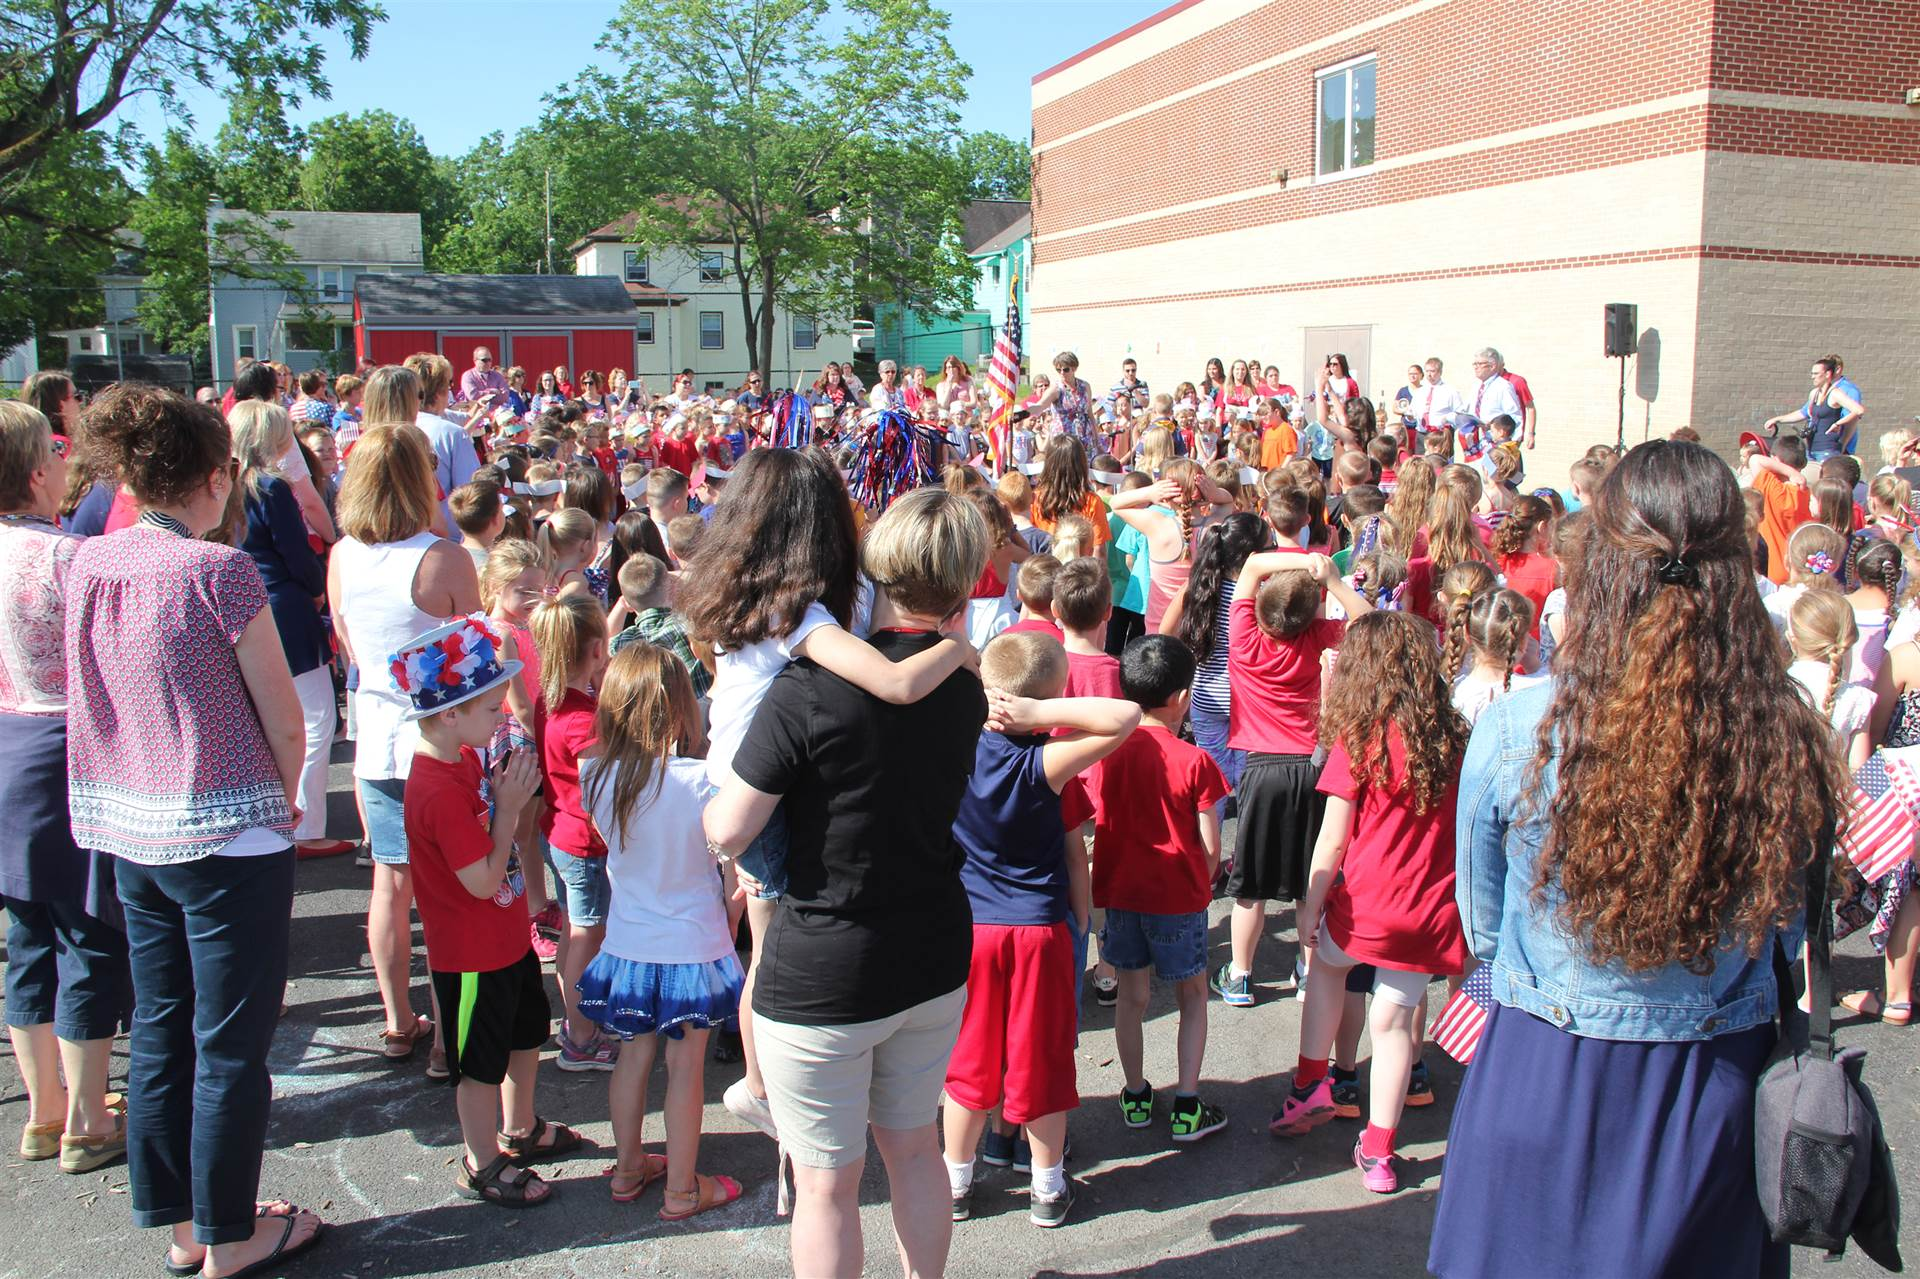 wide shot of annual port dickinson flag day event held behind elementary school building